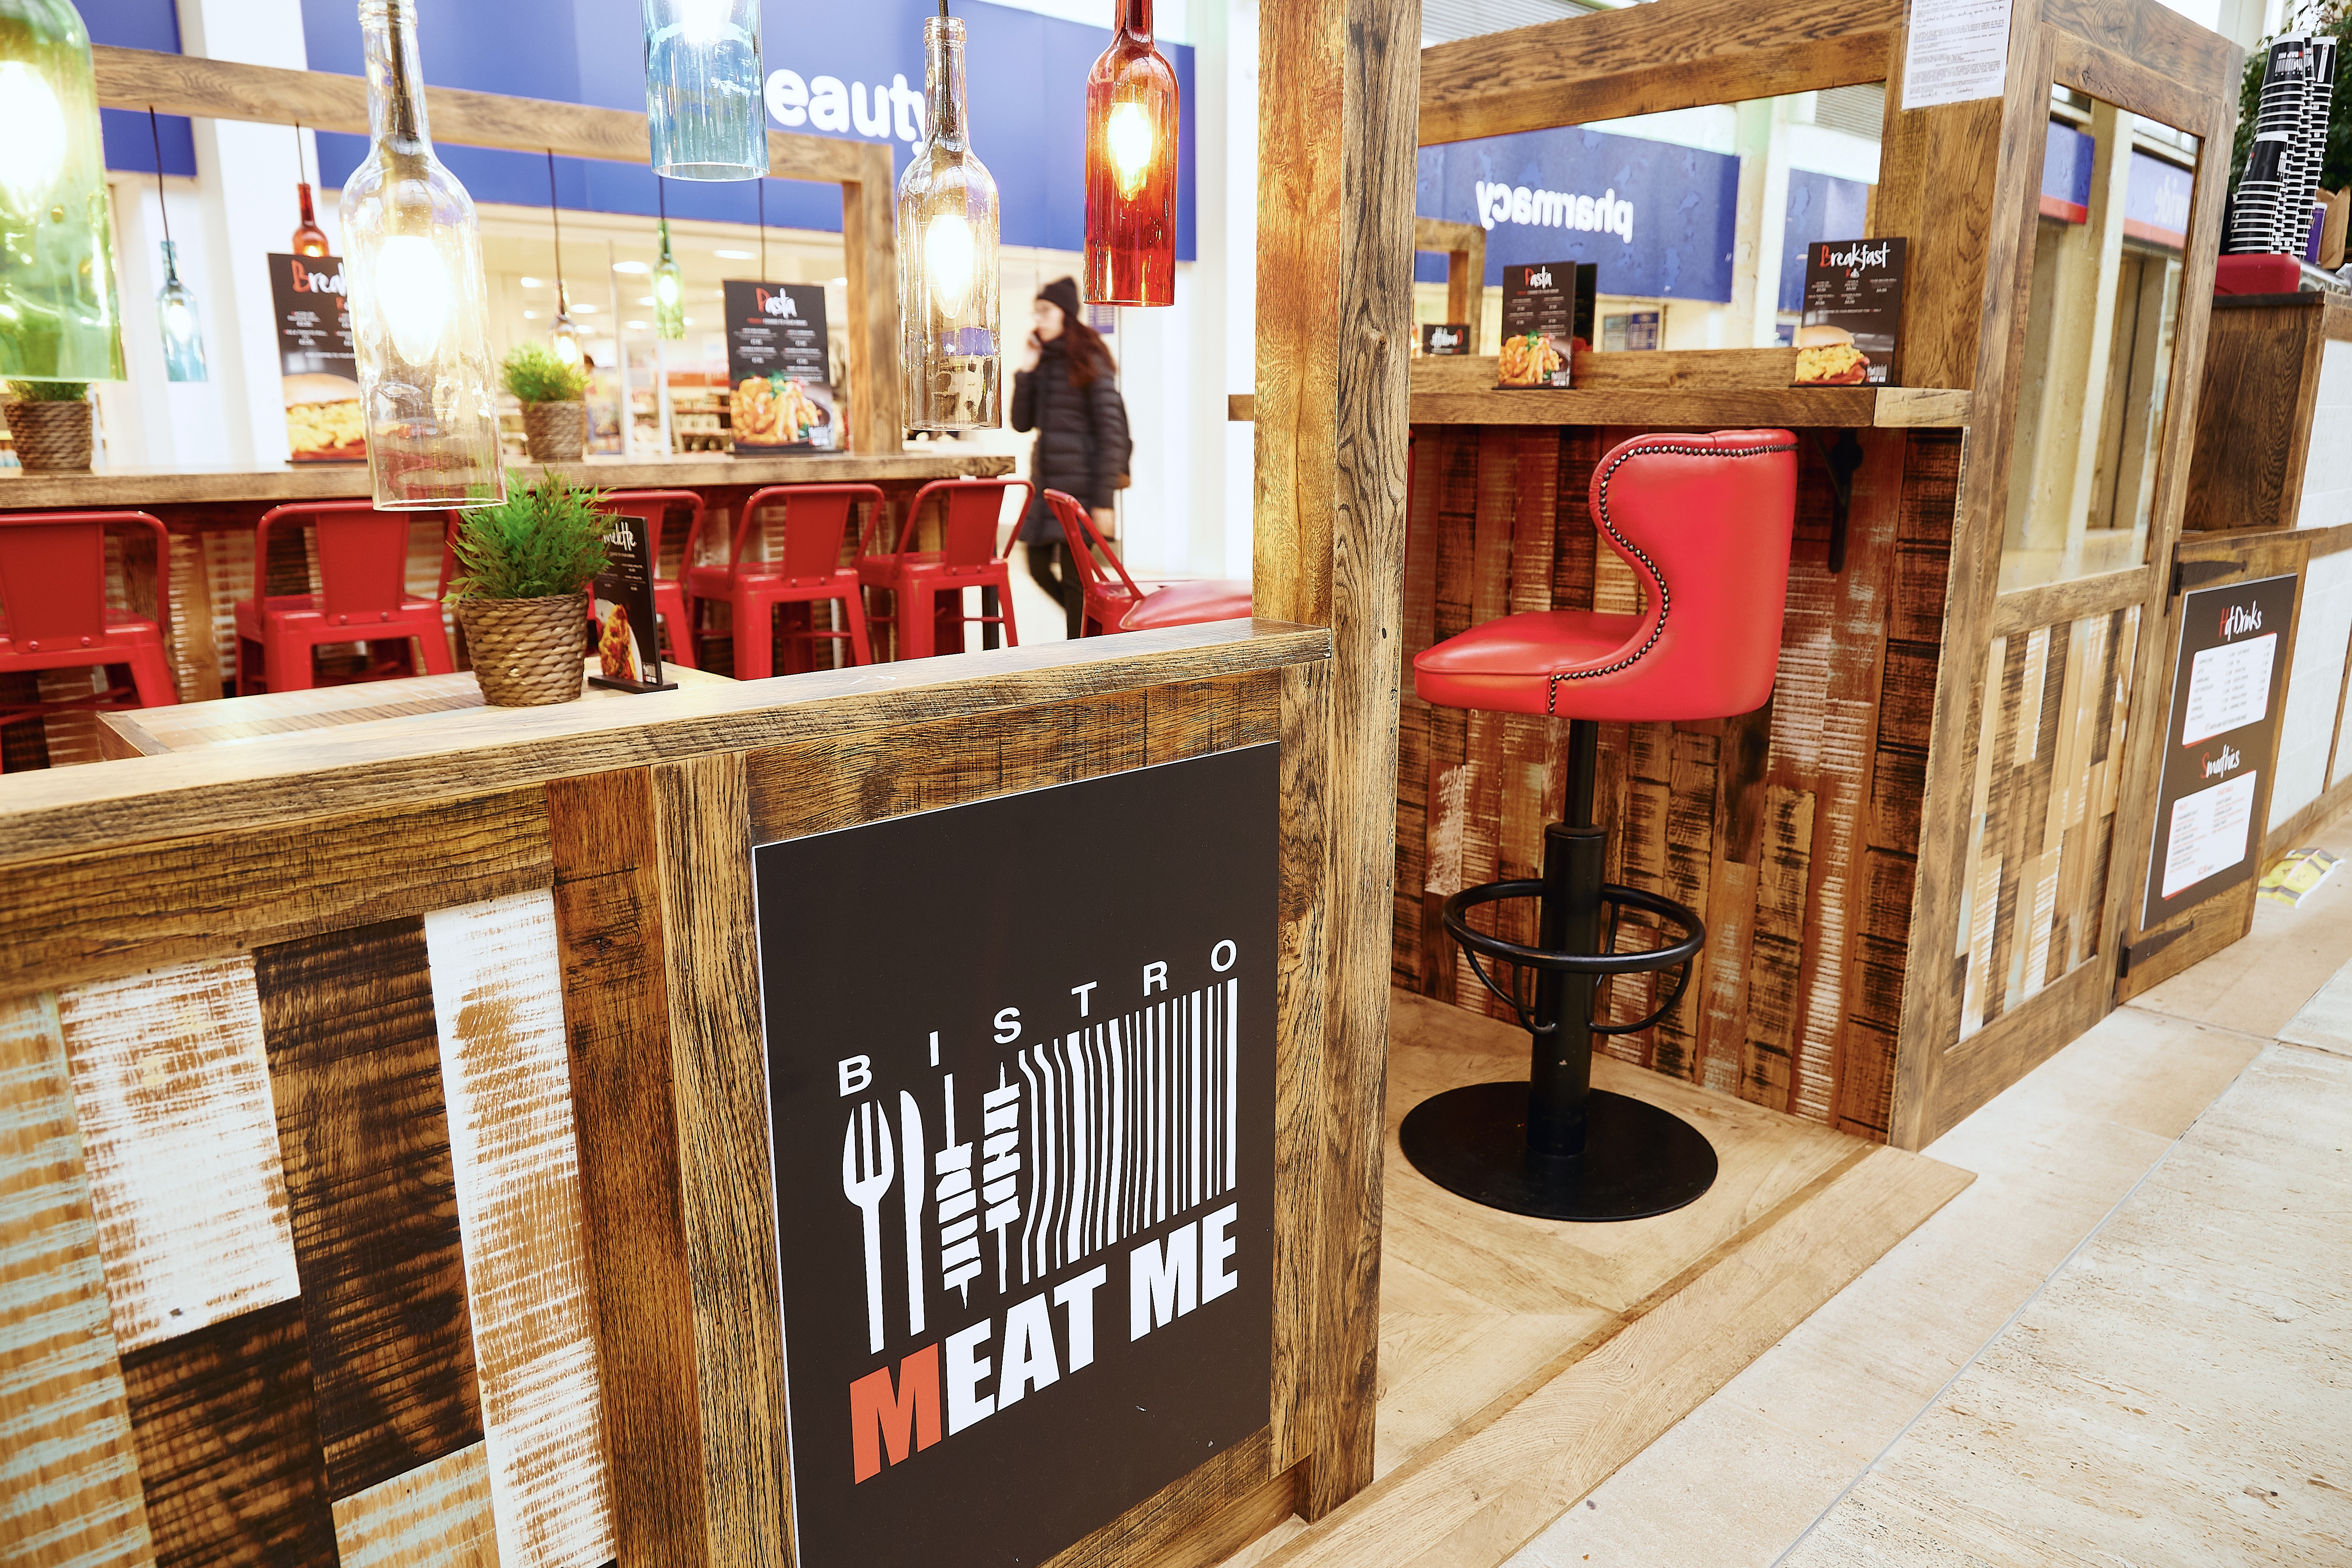 Meat Me Bistro branding with rustic wood surround and red leather bar stool